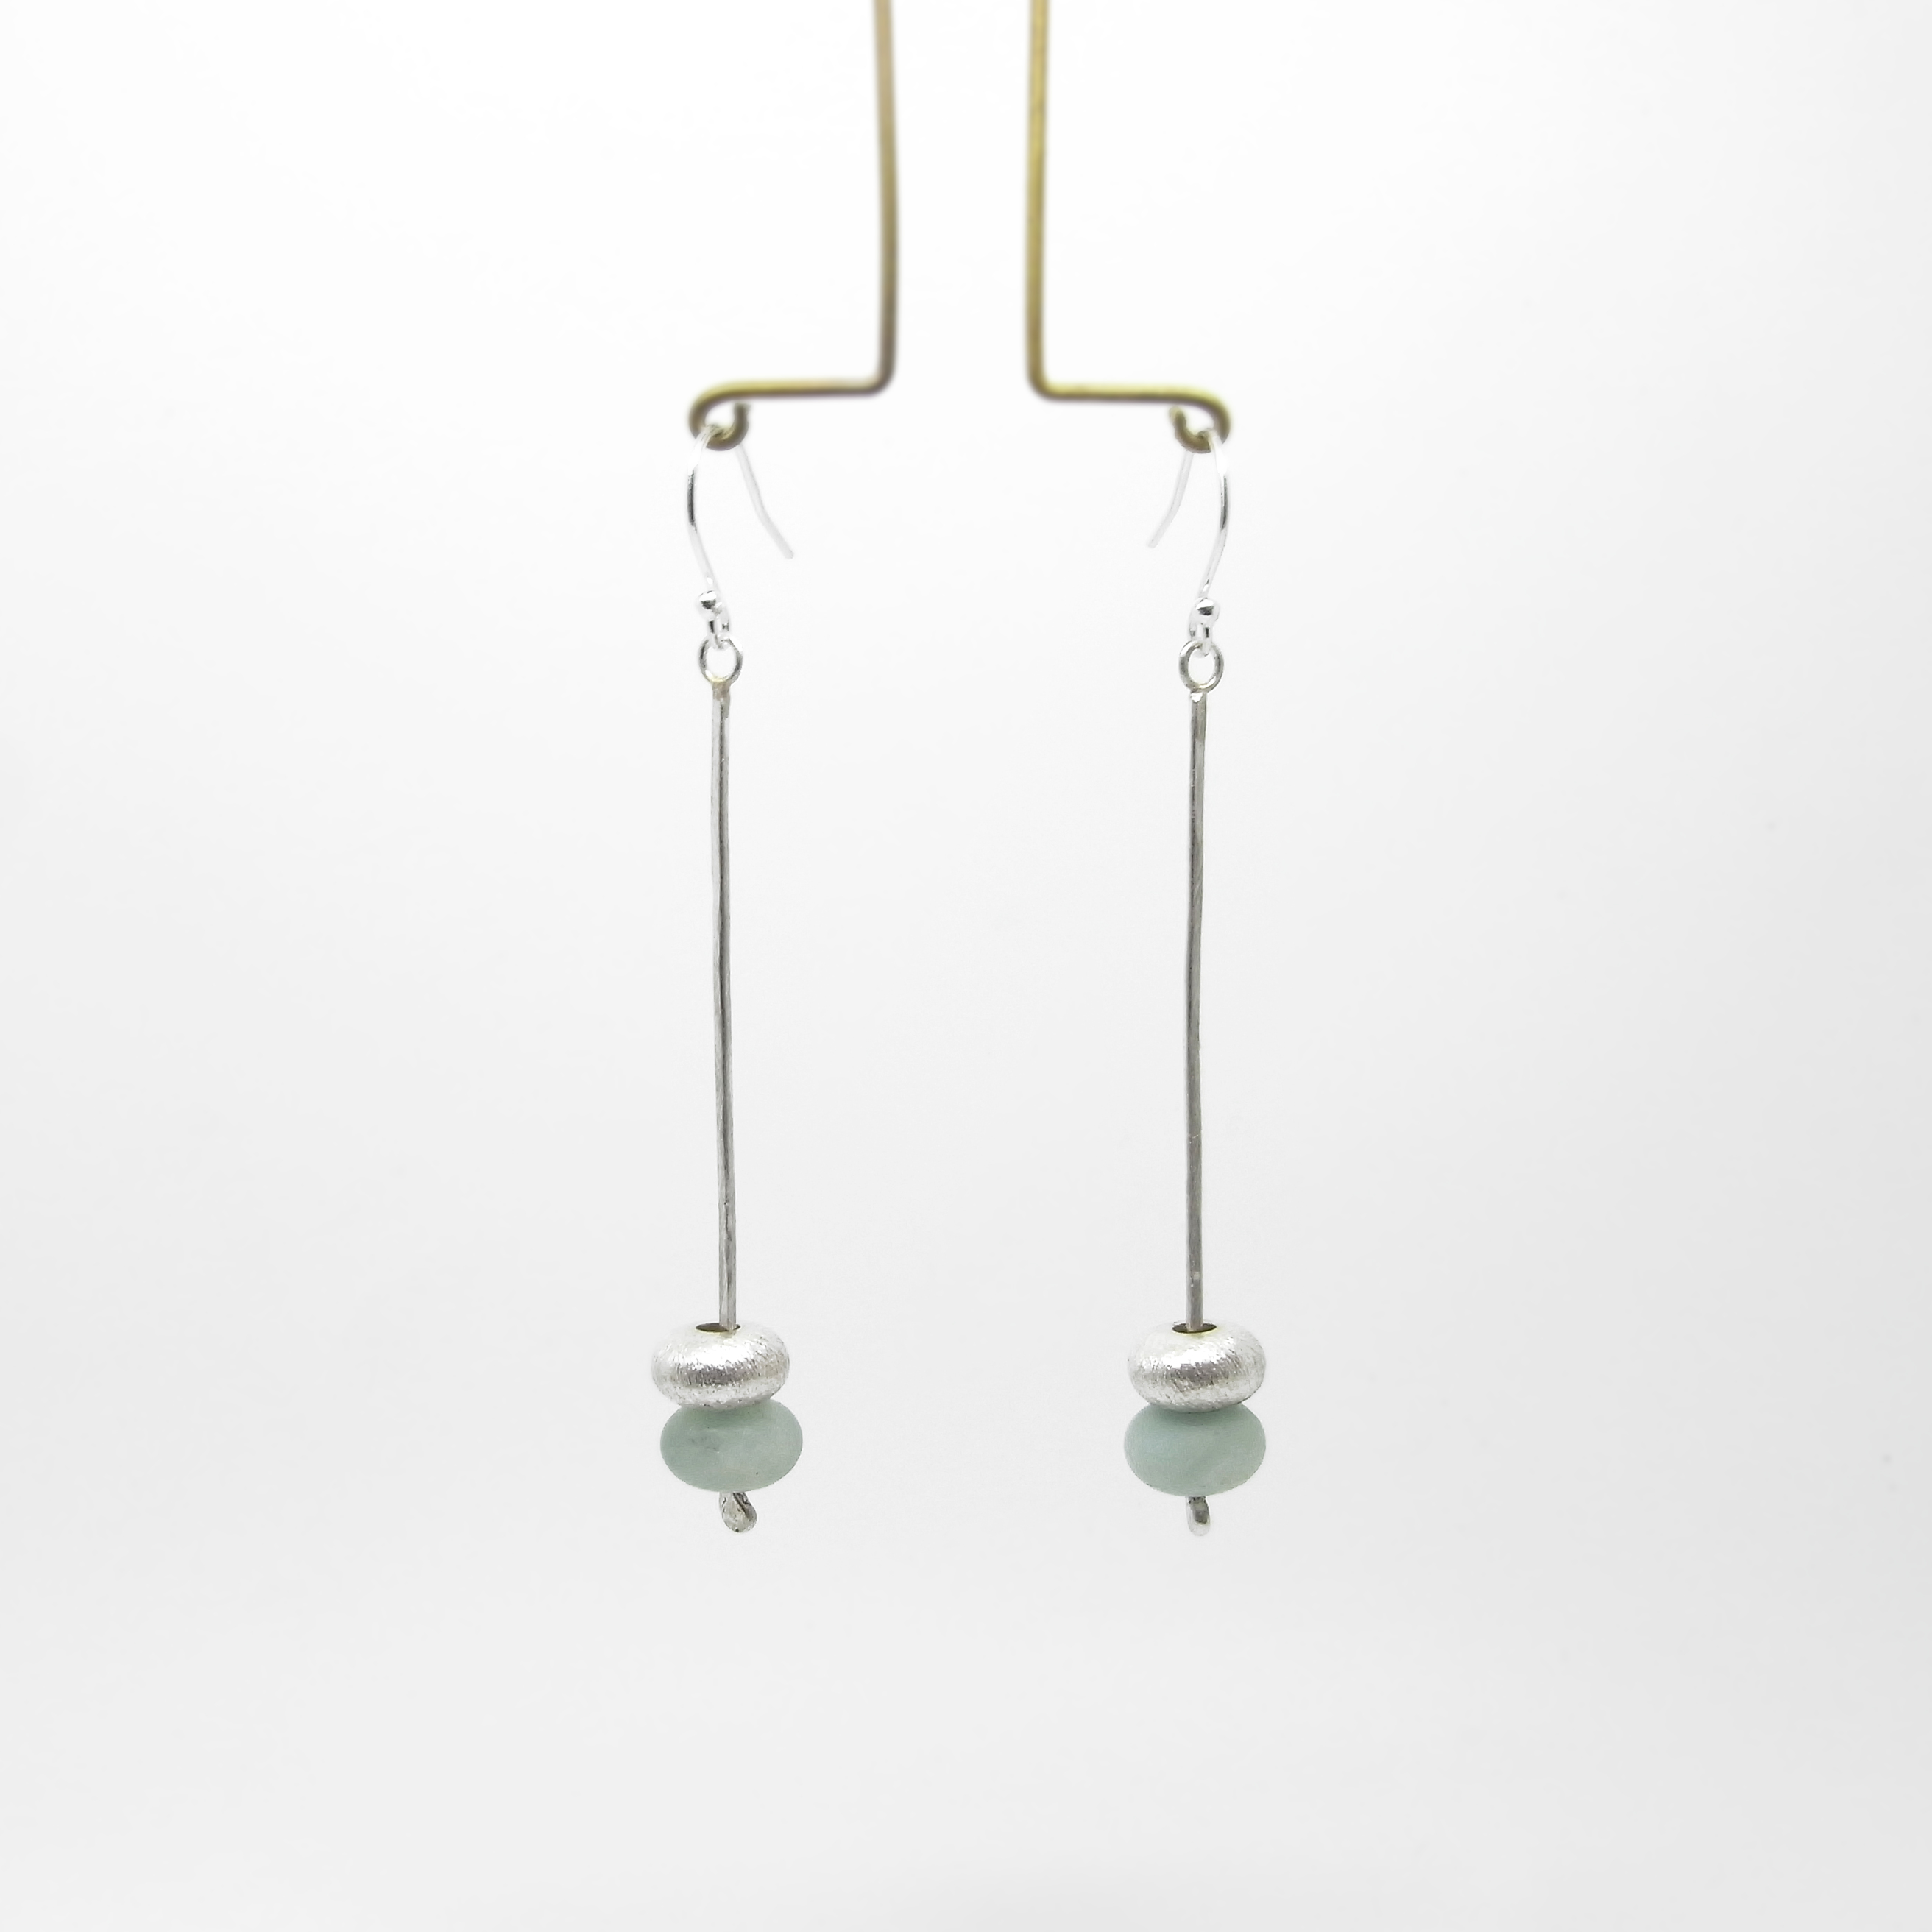 SALE - Silver and Amazonite Drop Earrings - Green